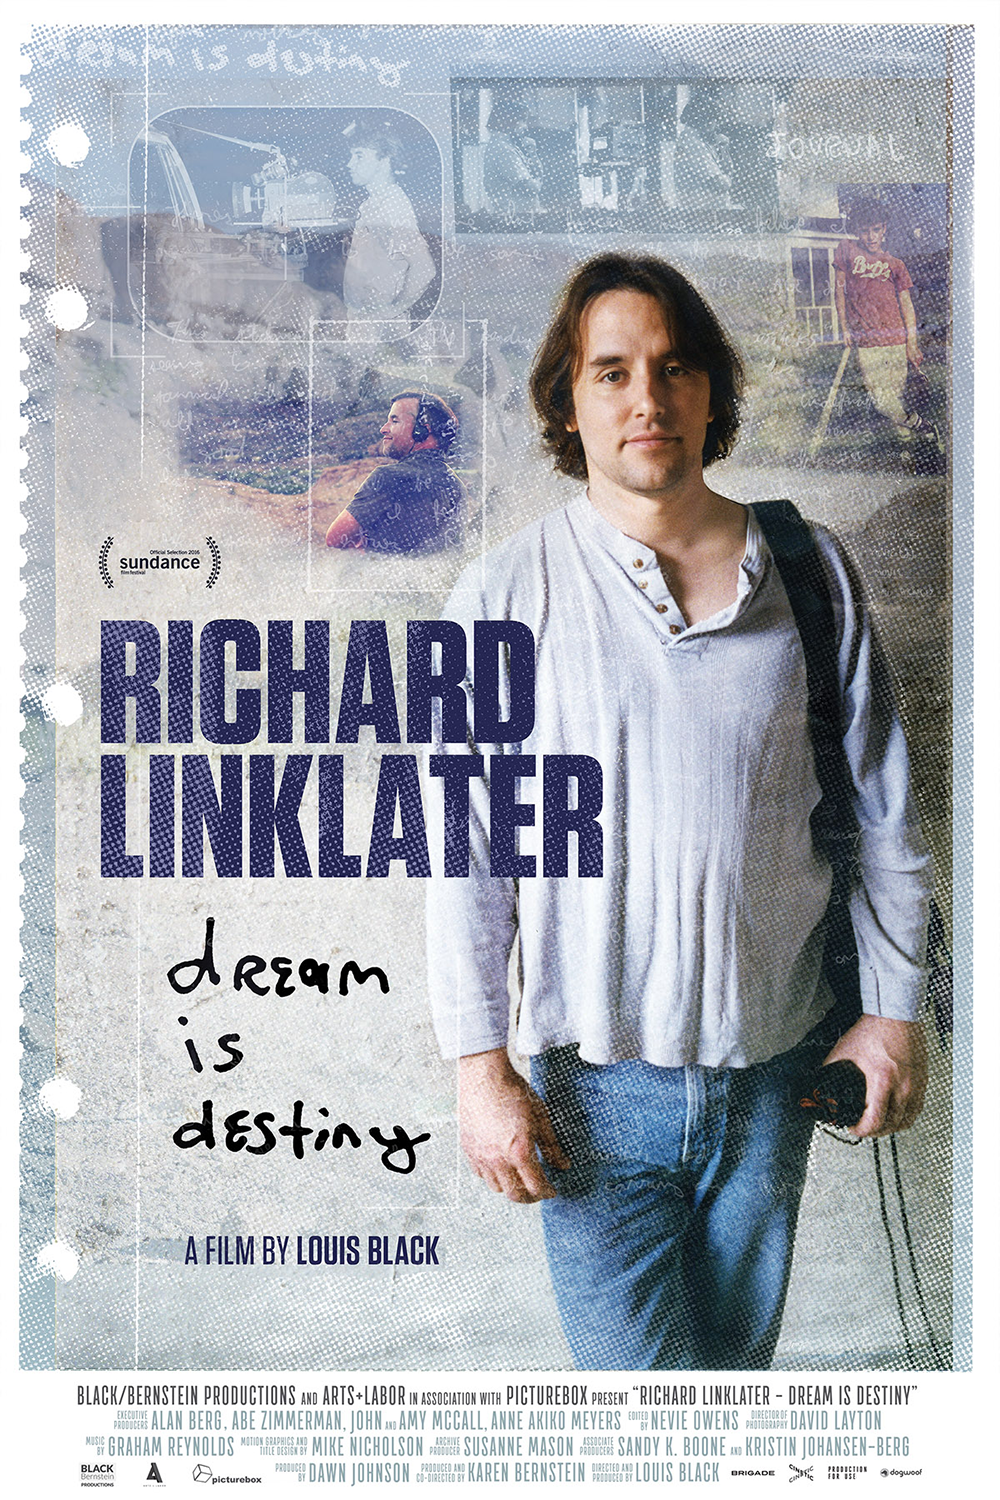 Richard Linklater Dream is Destiny Poster Design by Five and Four